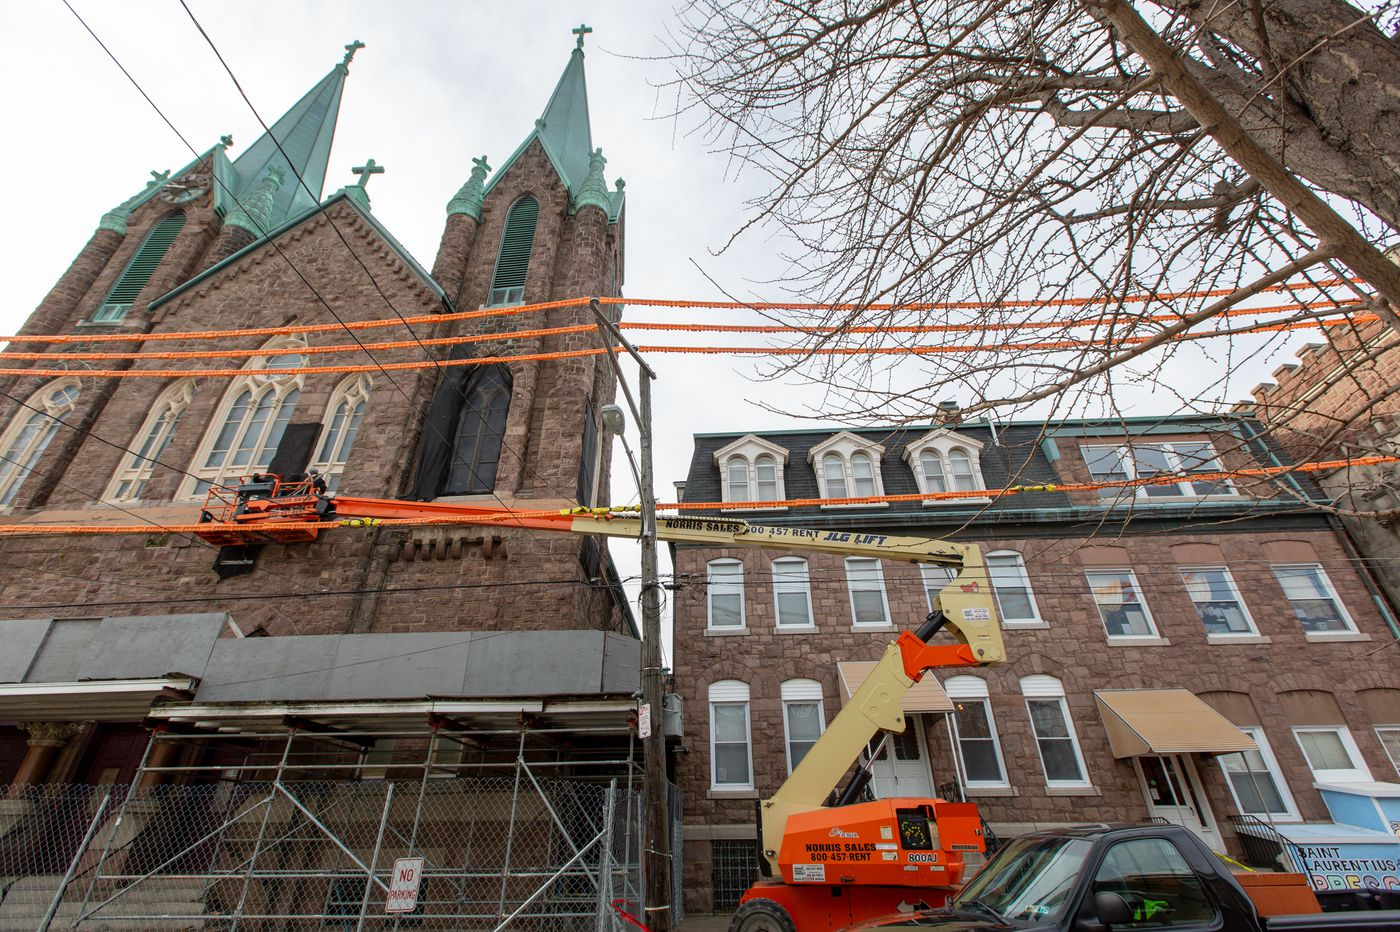 Philly City Council president to intervene in controversy over St. Laurentius site in Fishtown